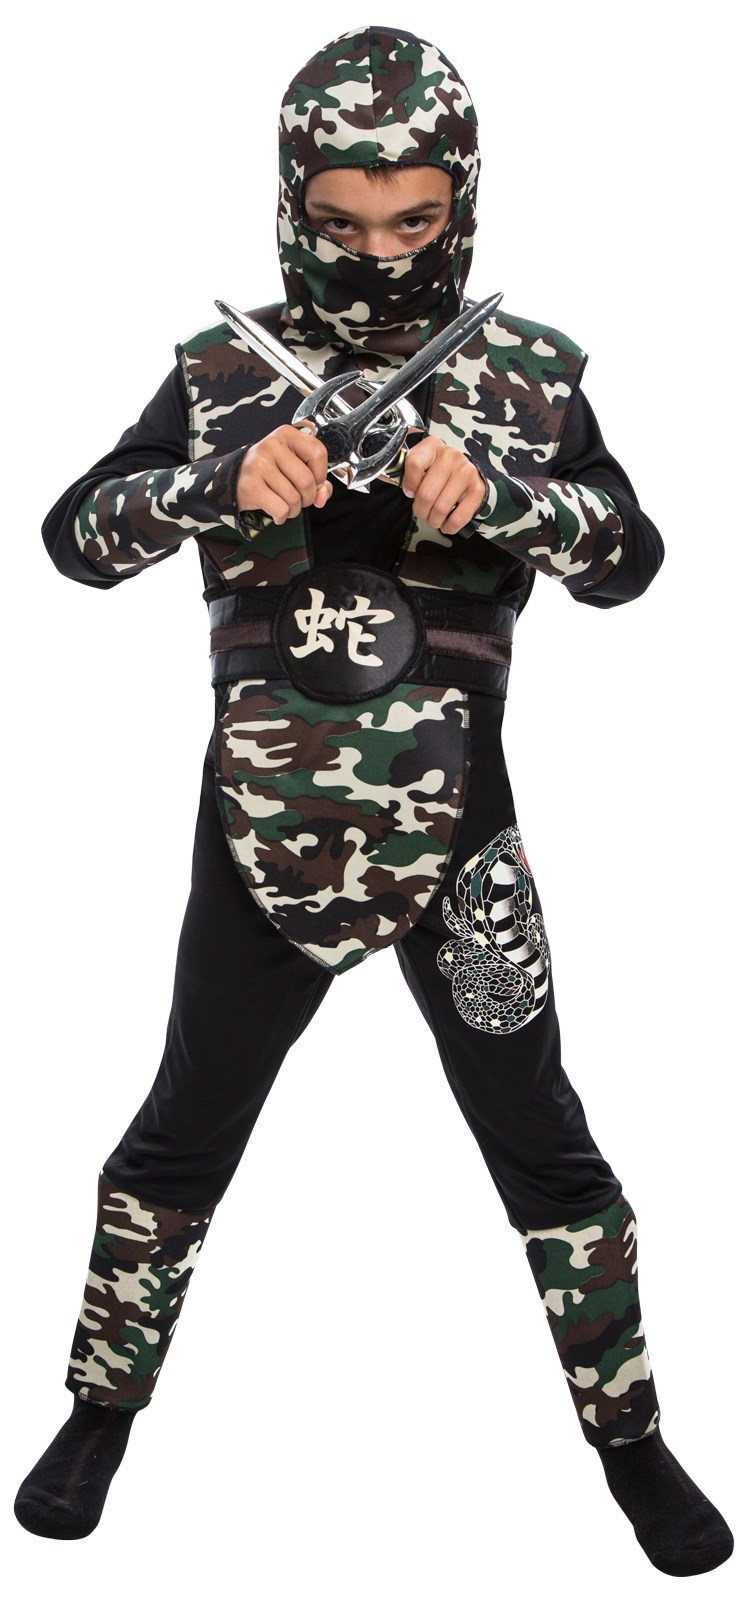 Childrens Camouflage Ninja Costume